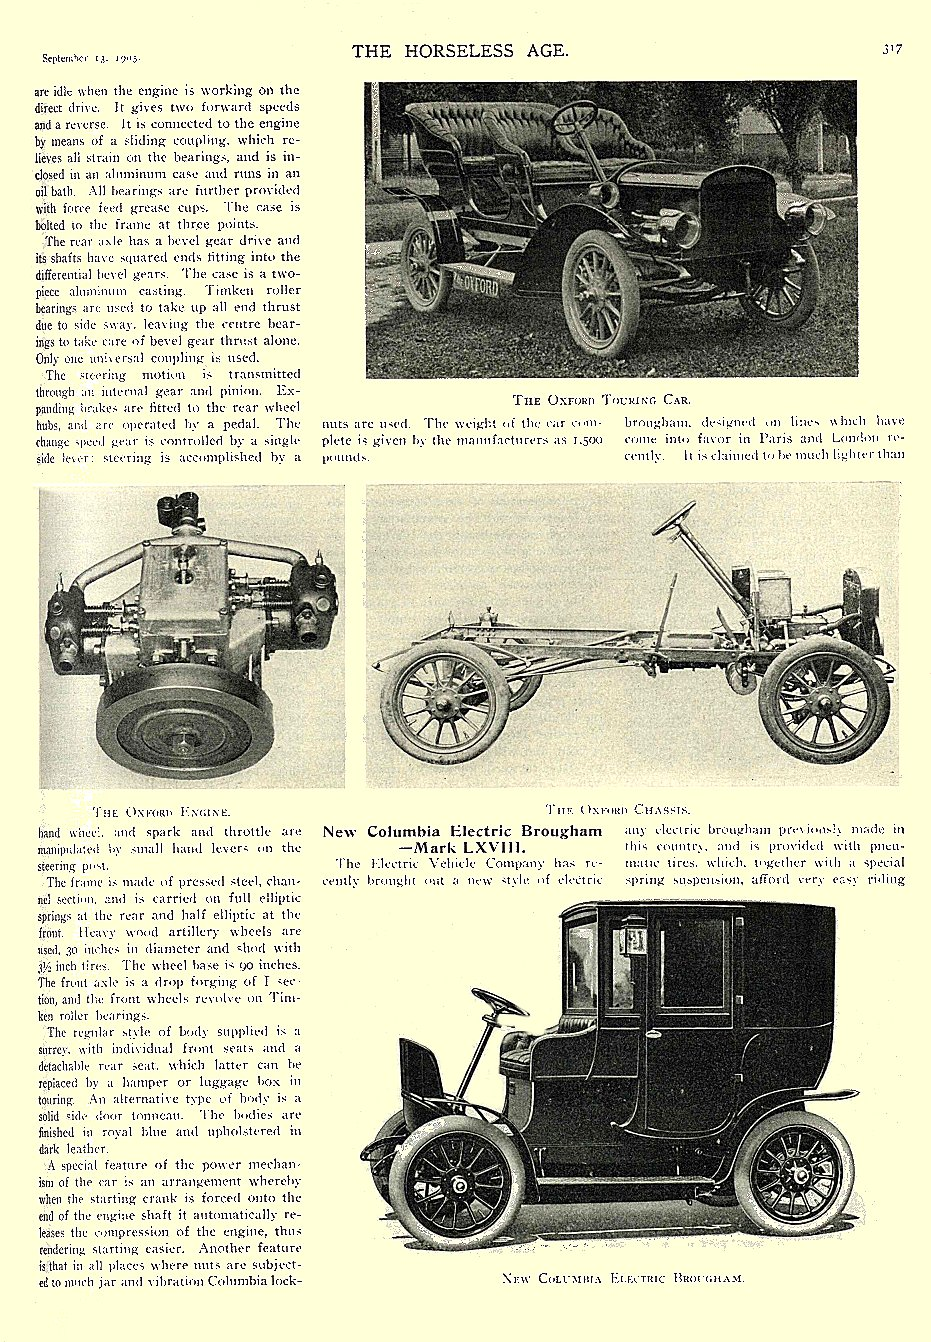 1905 9 13 COLUMBIA Electric New Columbia Electric Brougham — Mark LXV!!! THE HORSELESS AGE September 13, 1905 University of Minnesota Library 8.5″x11.5″ page 317